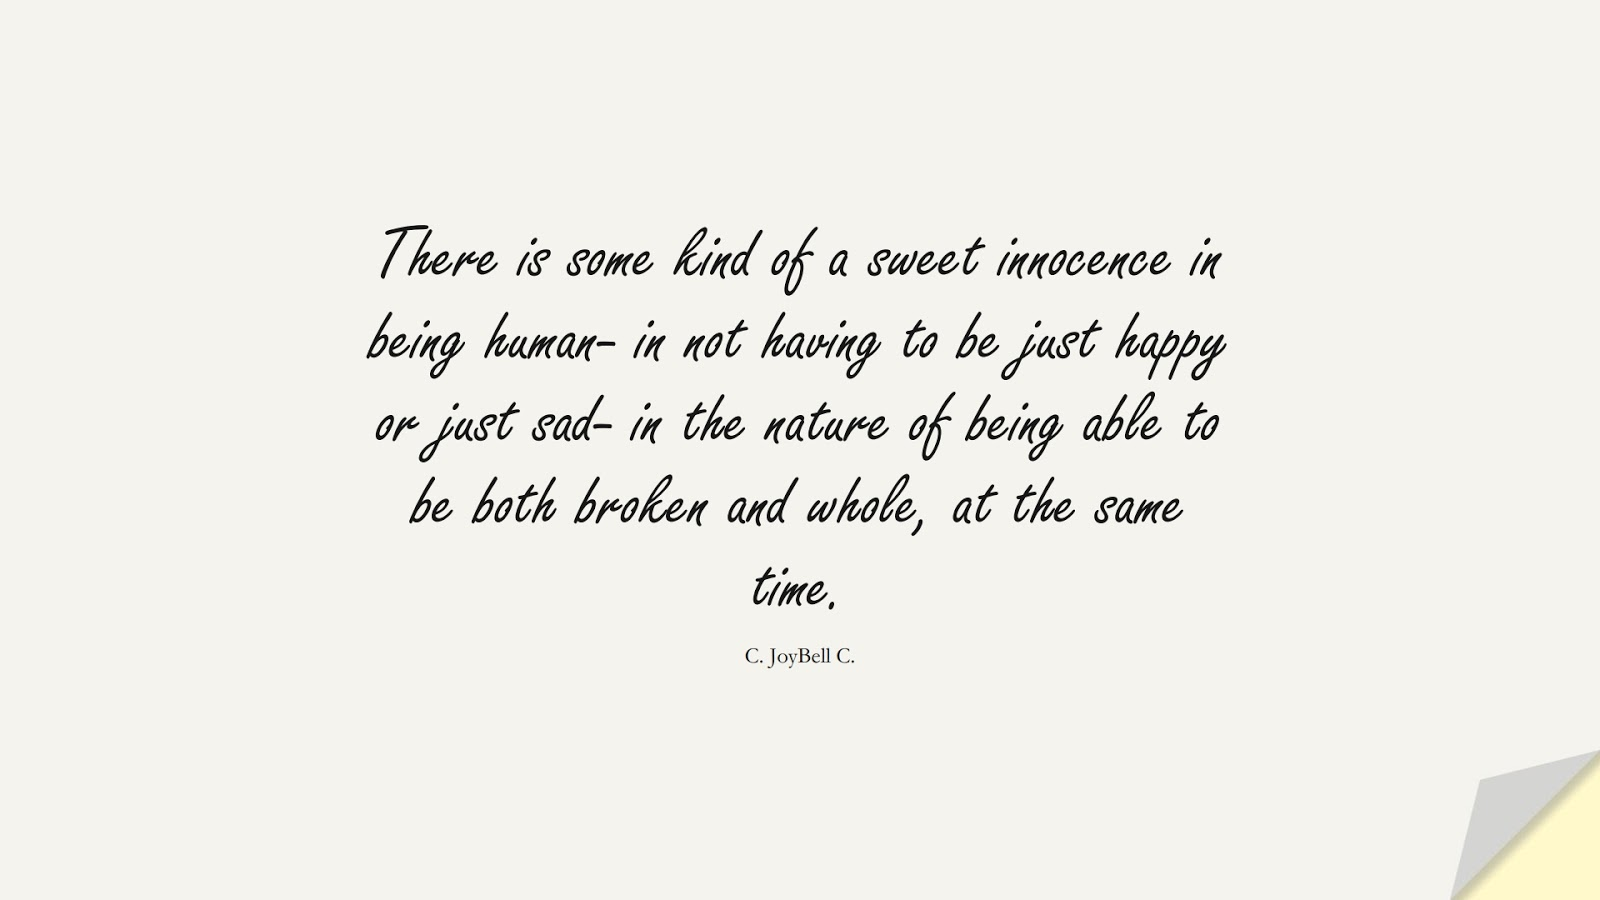 There is some kind of a sweet innocence in being human- in not having to be just happy or just sad- in the nature of being able to be both broken and whole, at the same time. (C. JoyBell C.);  #HappinessQuotes